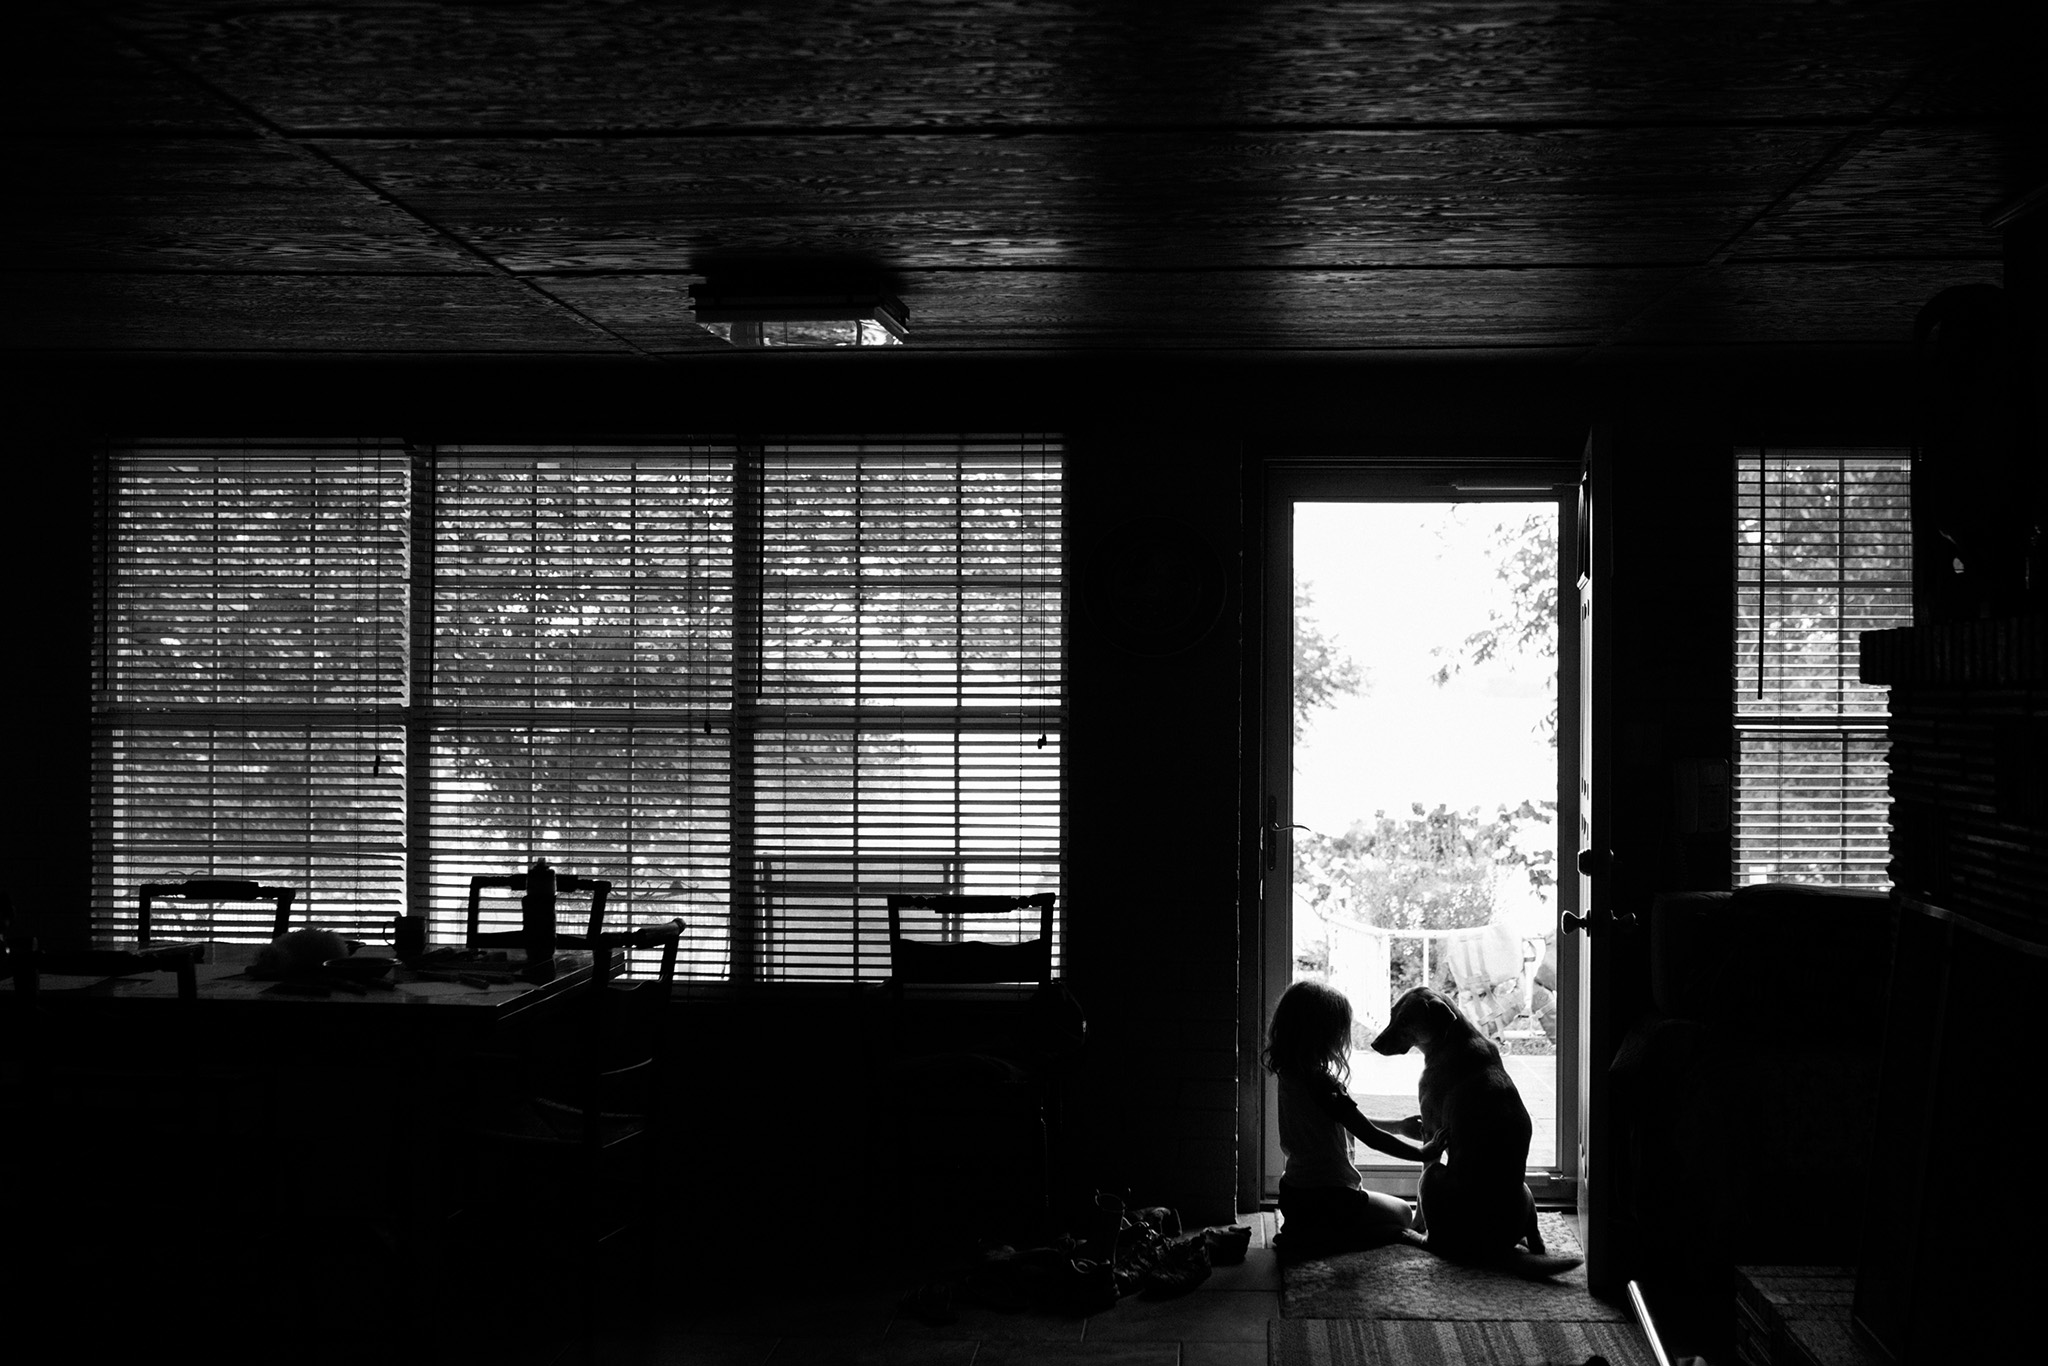 August 17: It seems like I've taken this photo of Darby many times with many children in the cabin, but this one with Quinn is a favorite.